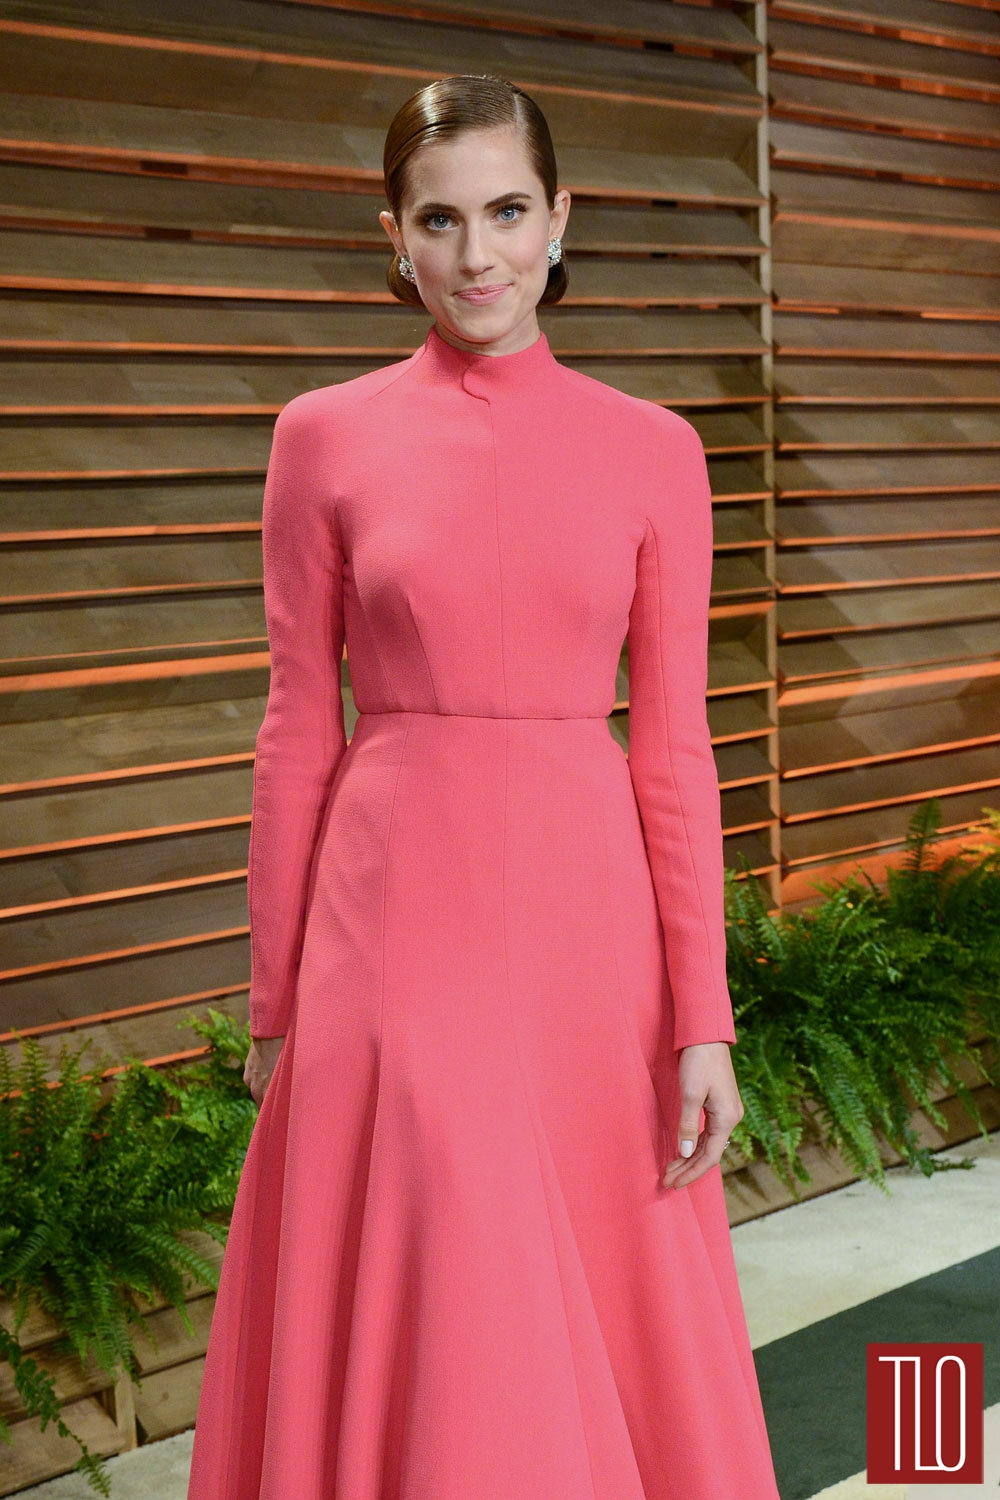 Allison-Williams-Emilia-Wickstead-Oscars-2014-Vanity-Fair-2014-Tom-Lorenzo-Site-TLO (1)